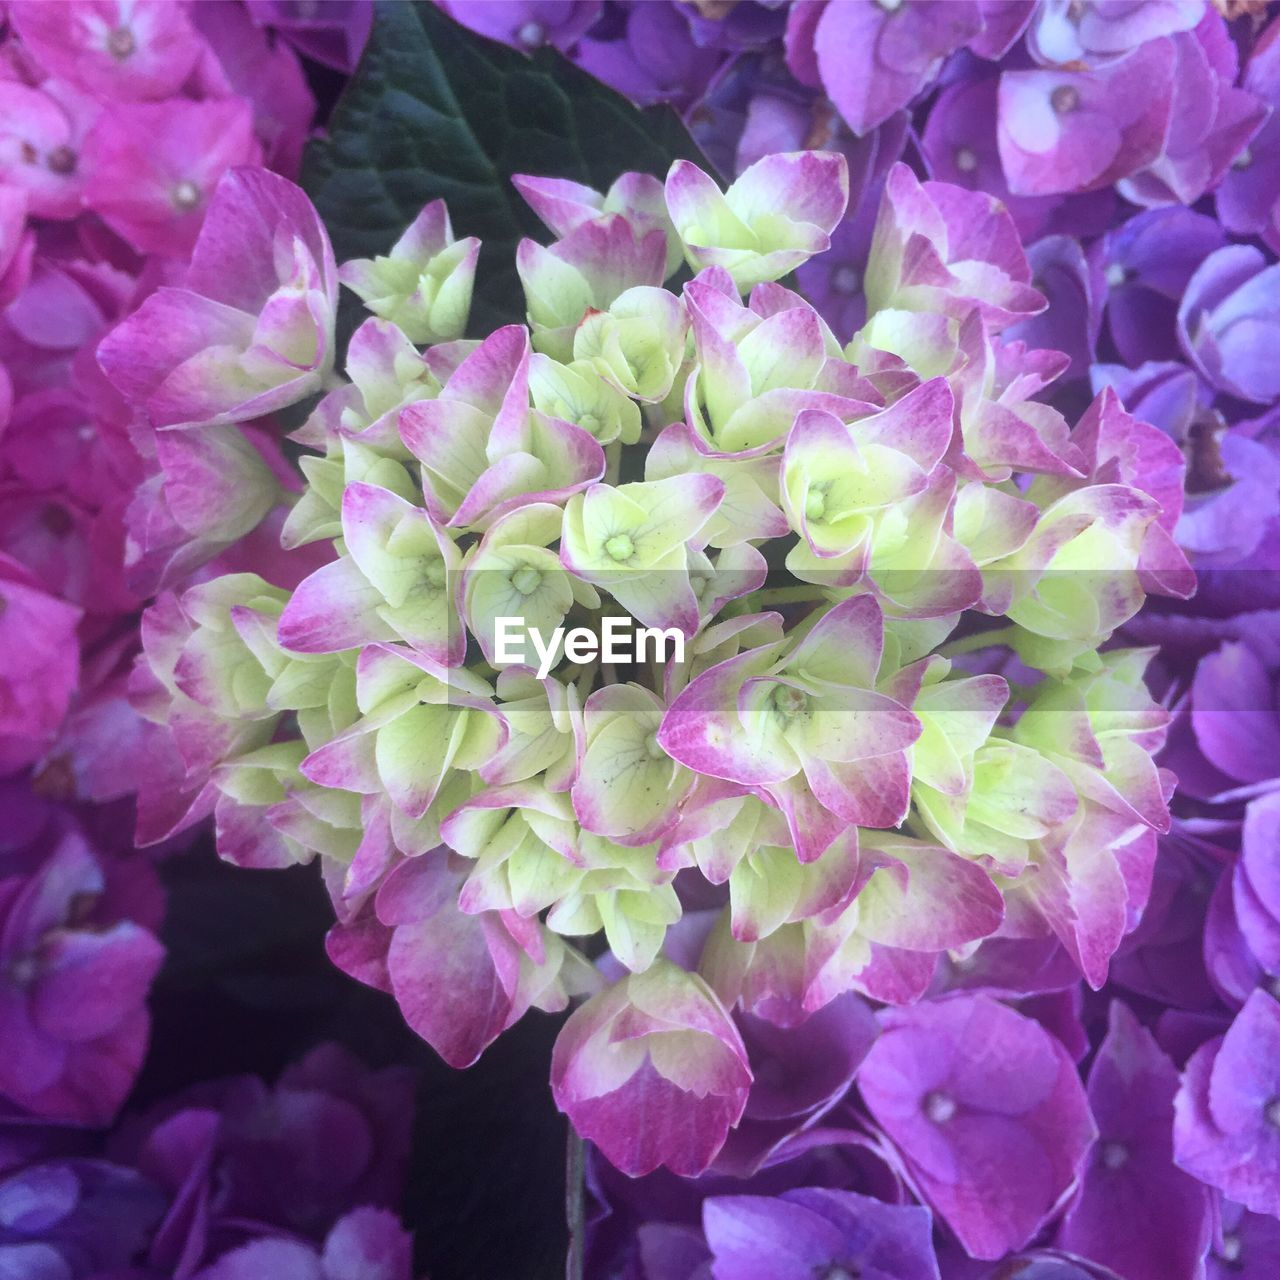 plant, flower, fragility, beauty in nature, vulnerability, freshness, flowering plant, growth, close-up, petal, inflorescence, no people, nature, flower head, day, pink color, purple, full frame, botany, hydrangea, outdoors, bunch of flowers, springtime, lilac, flower arrangement